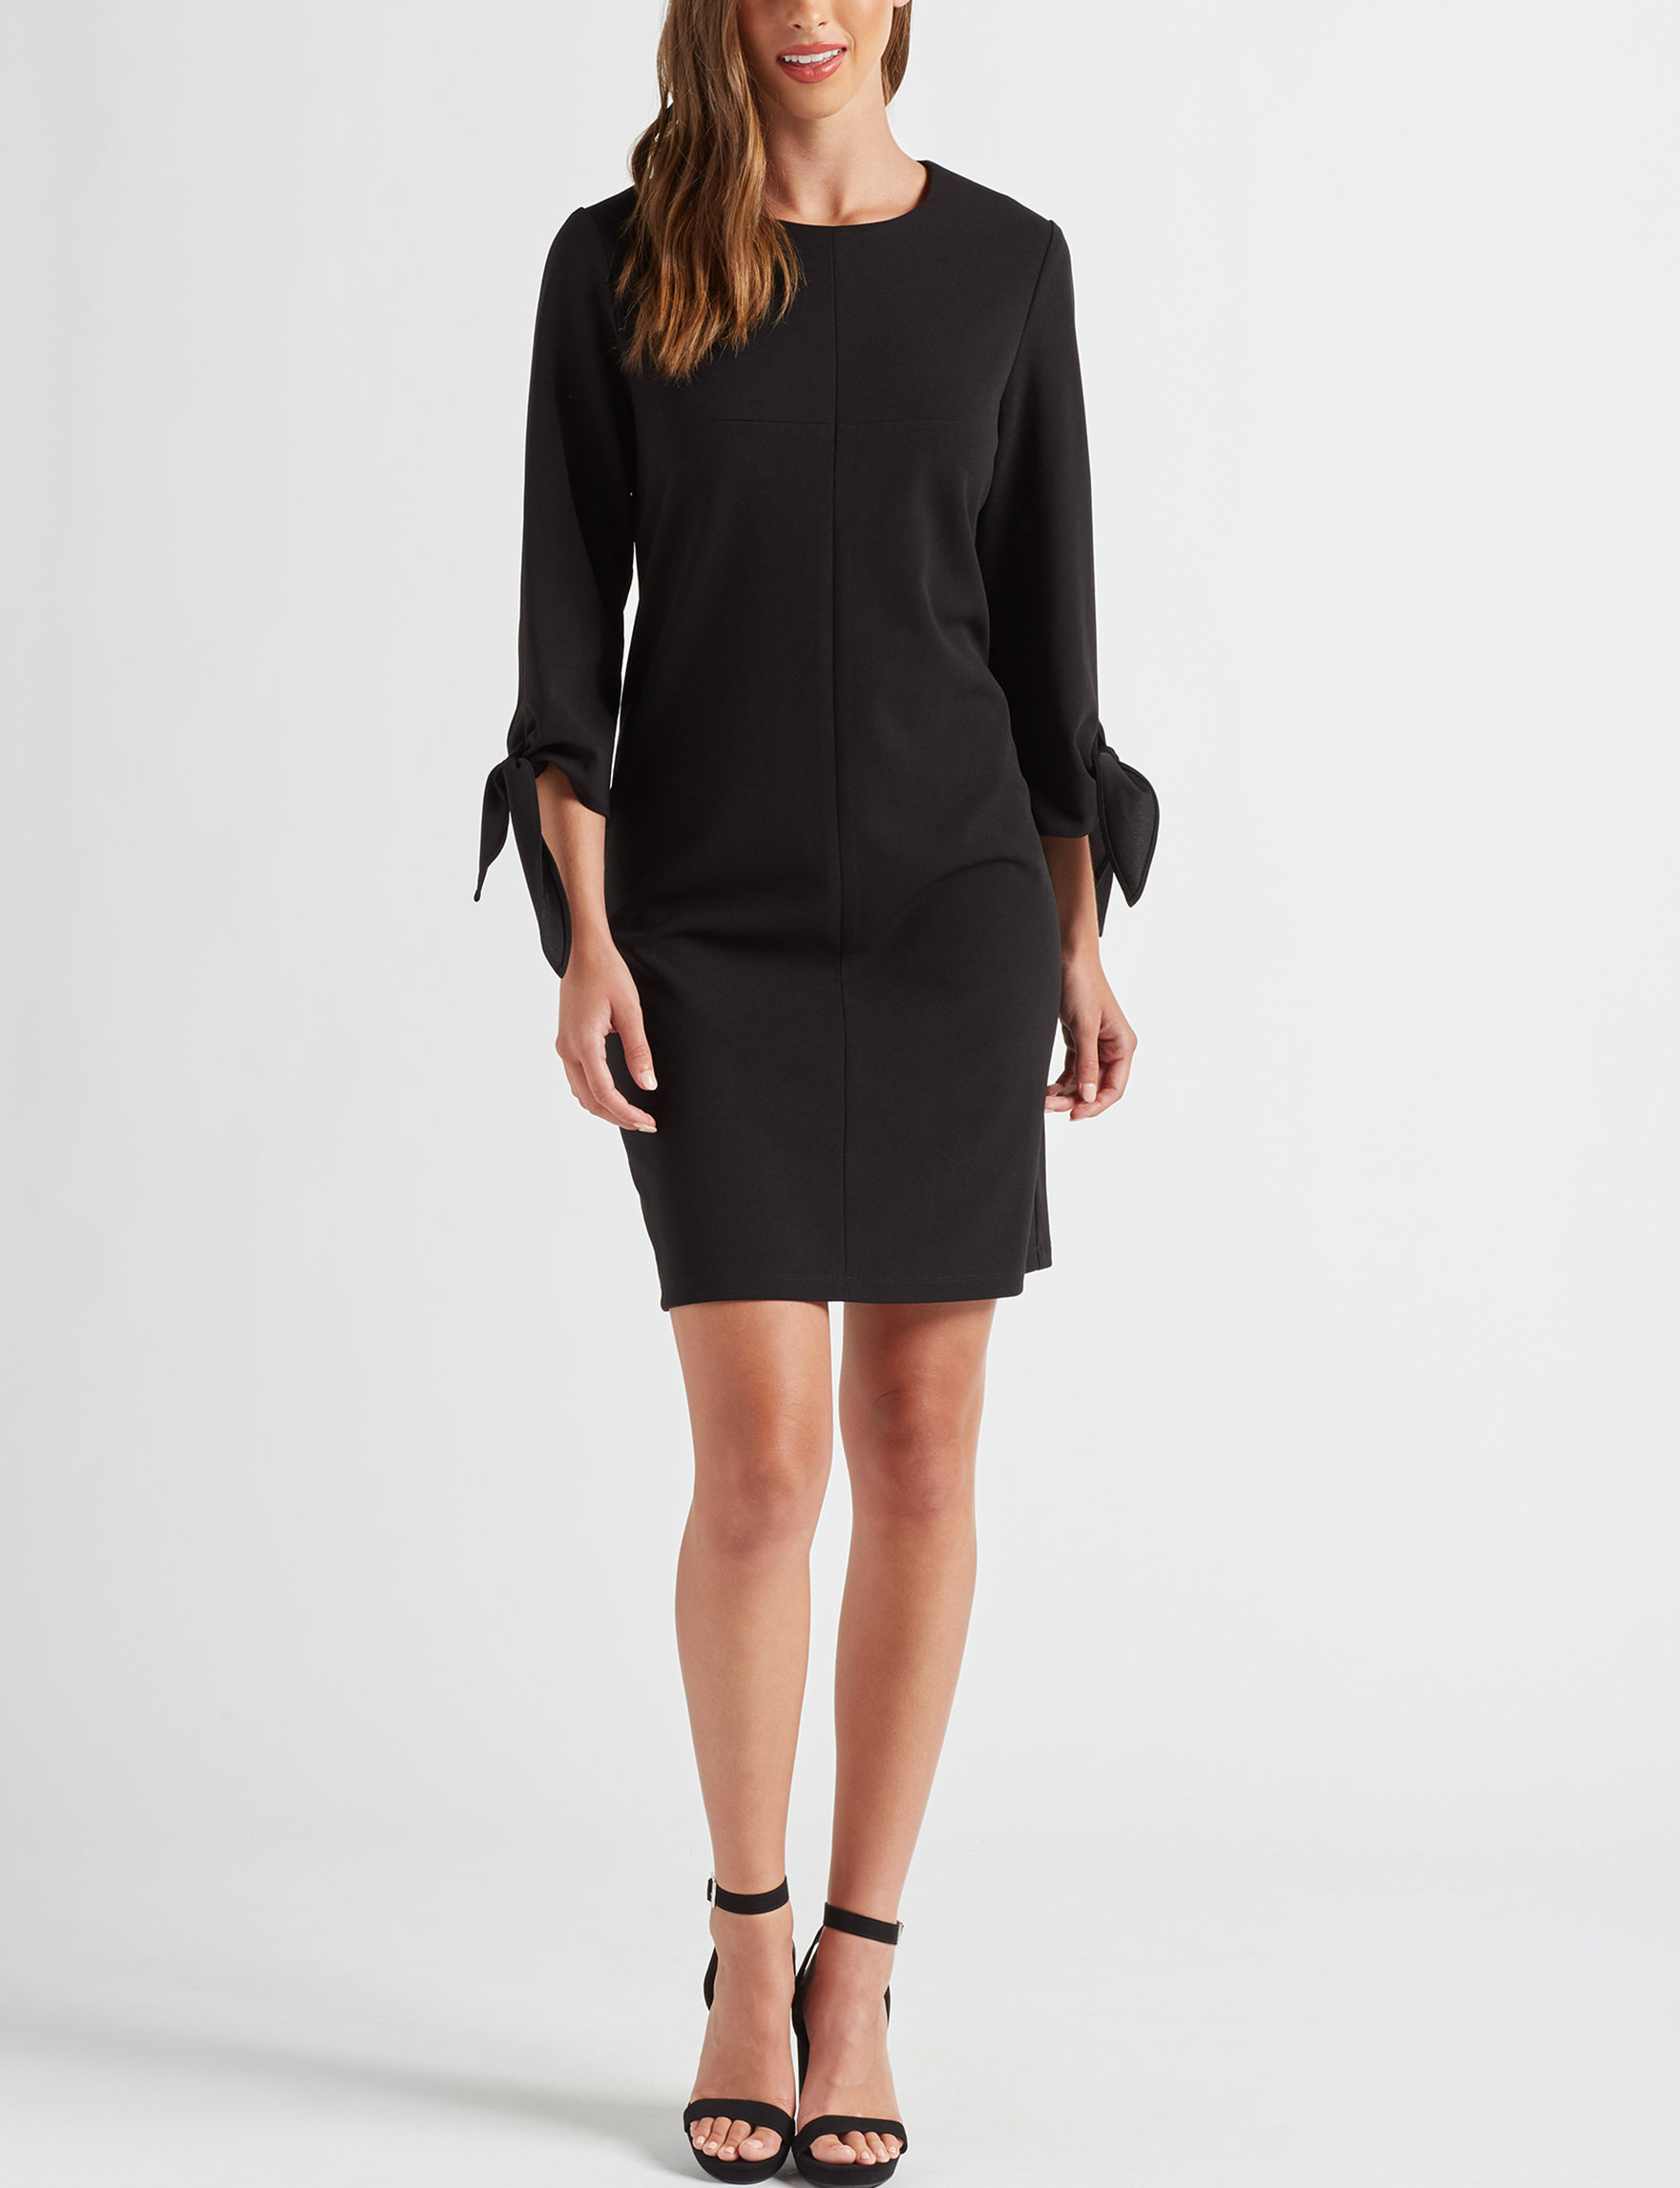 Ronni Nicole Black Evening & Formal Shift Dresses